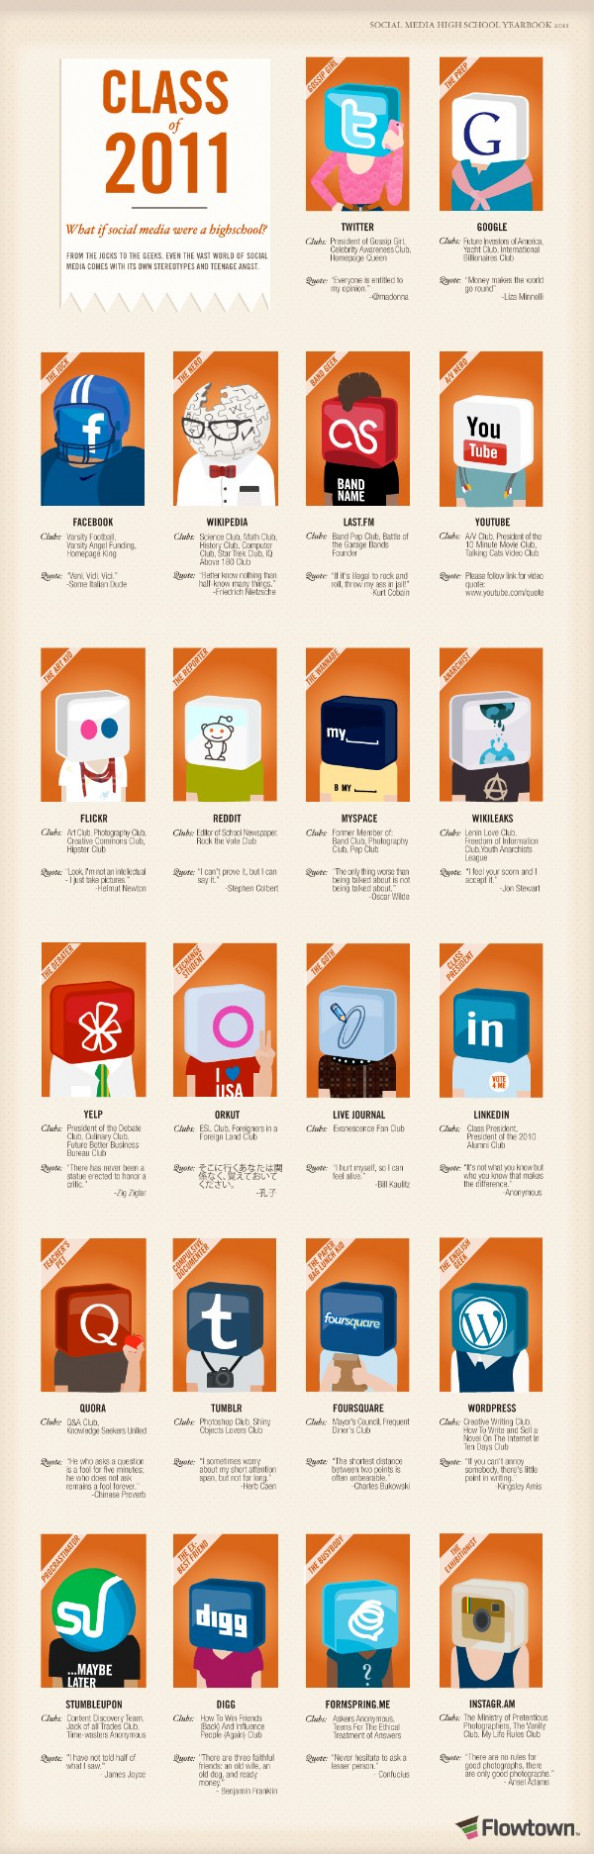 Social Media High School Infographic